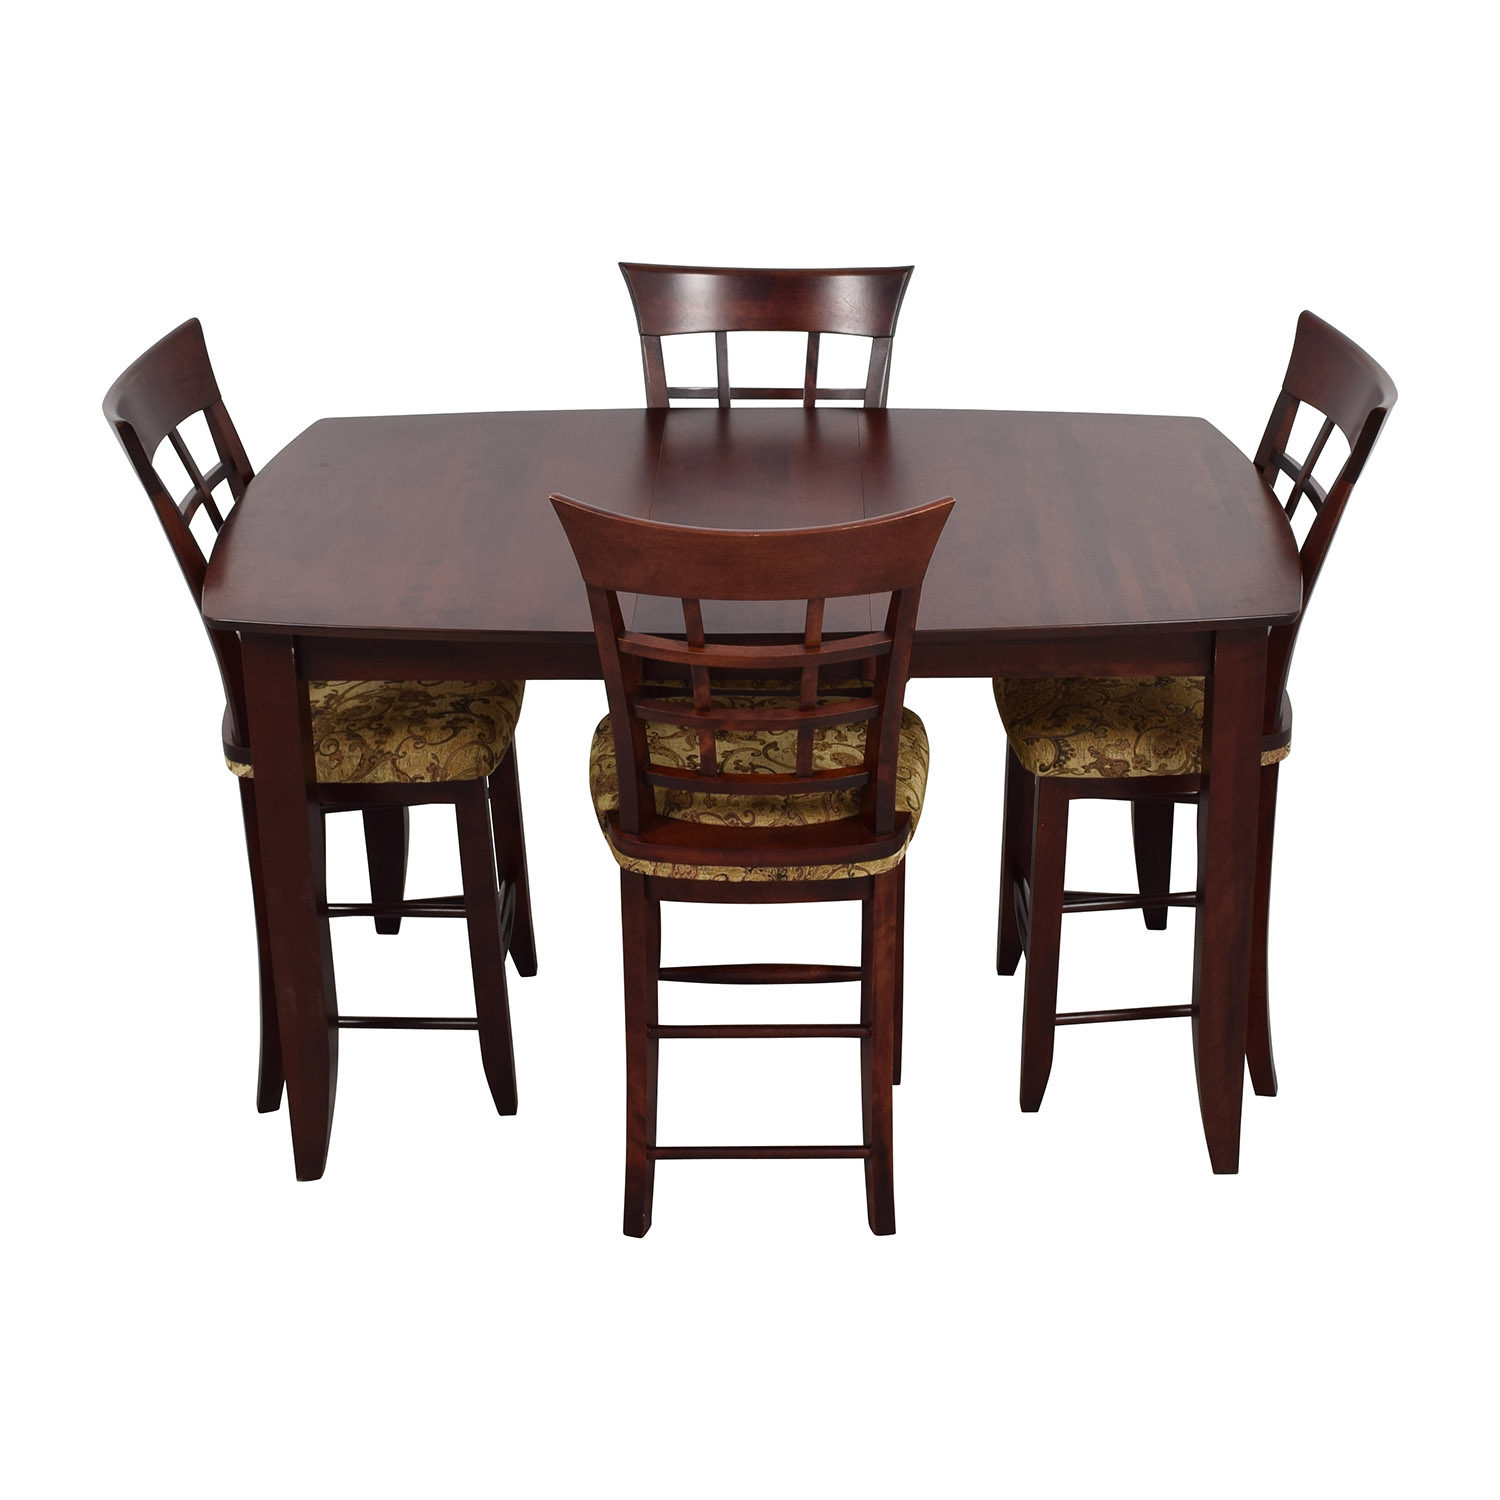 chairs dining table revolving chair in guwahati 48 off high top with four tables